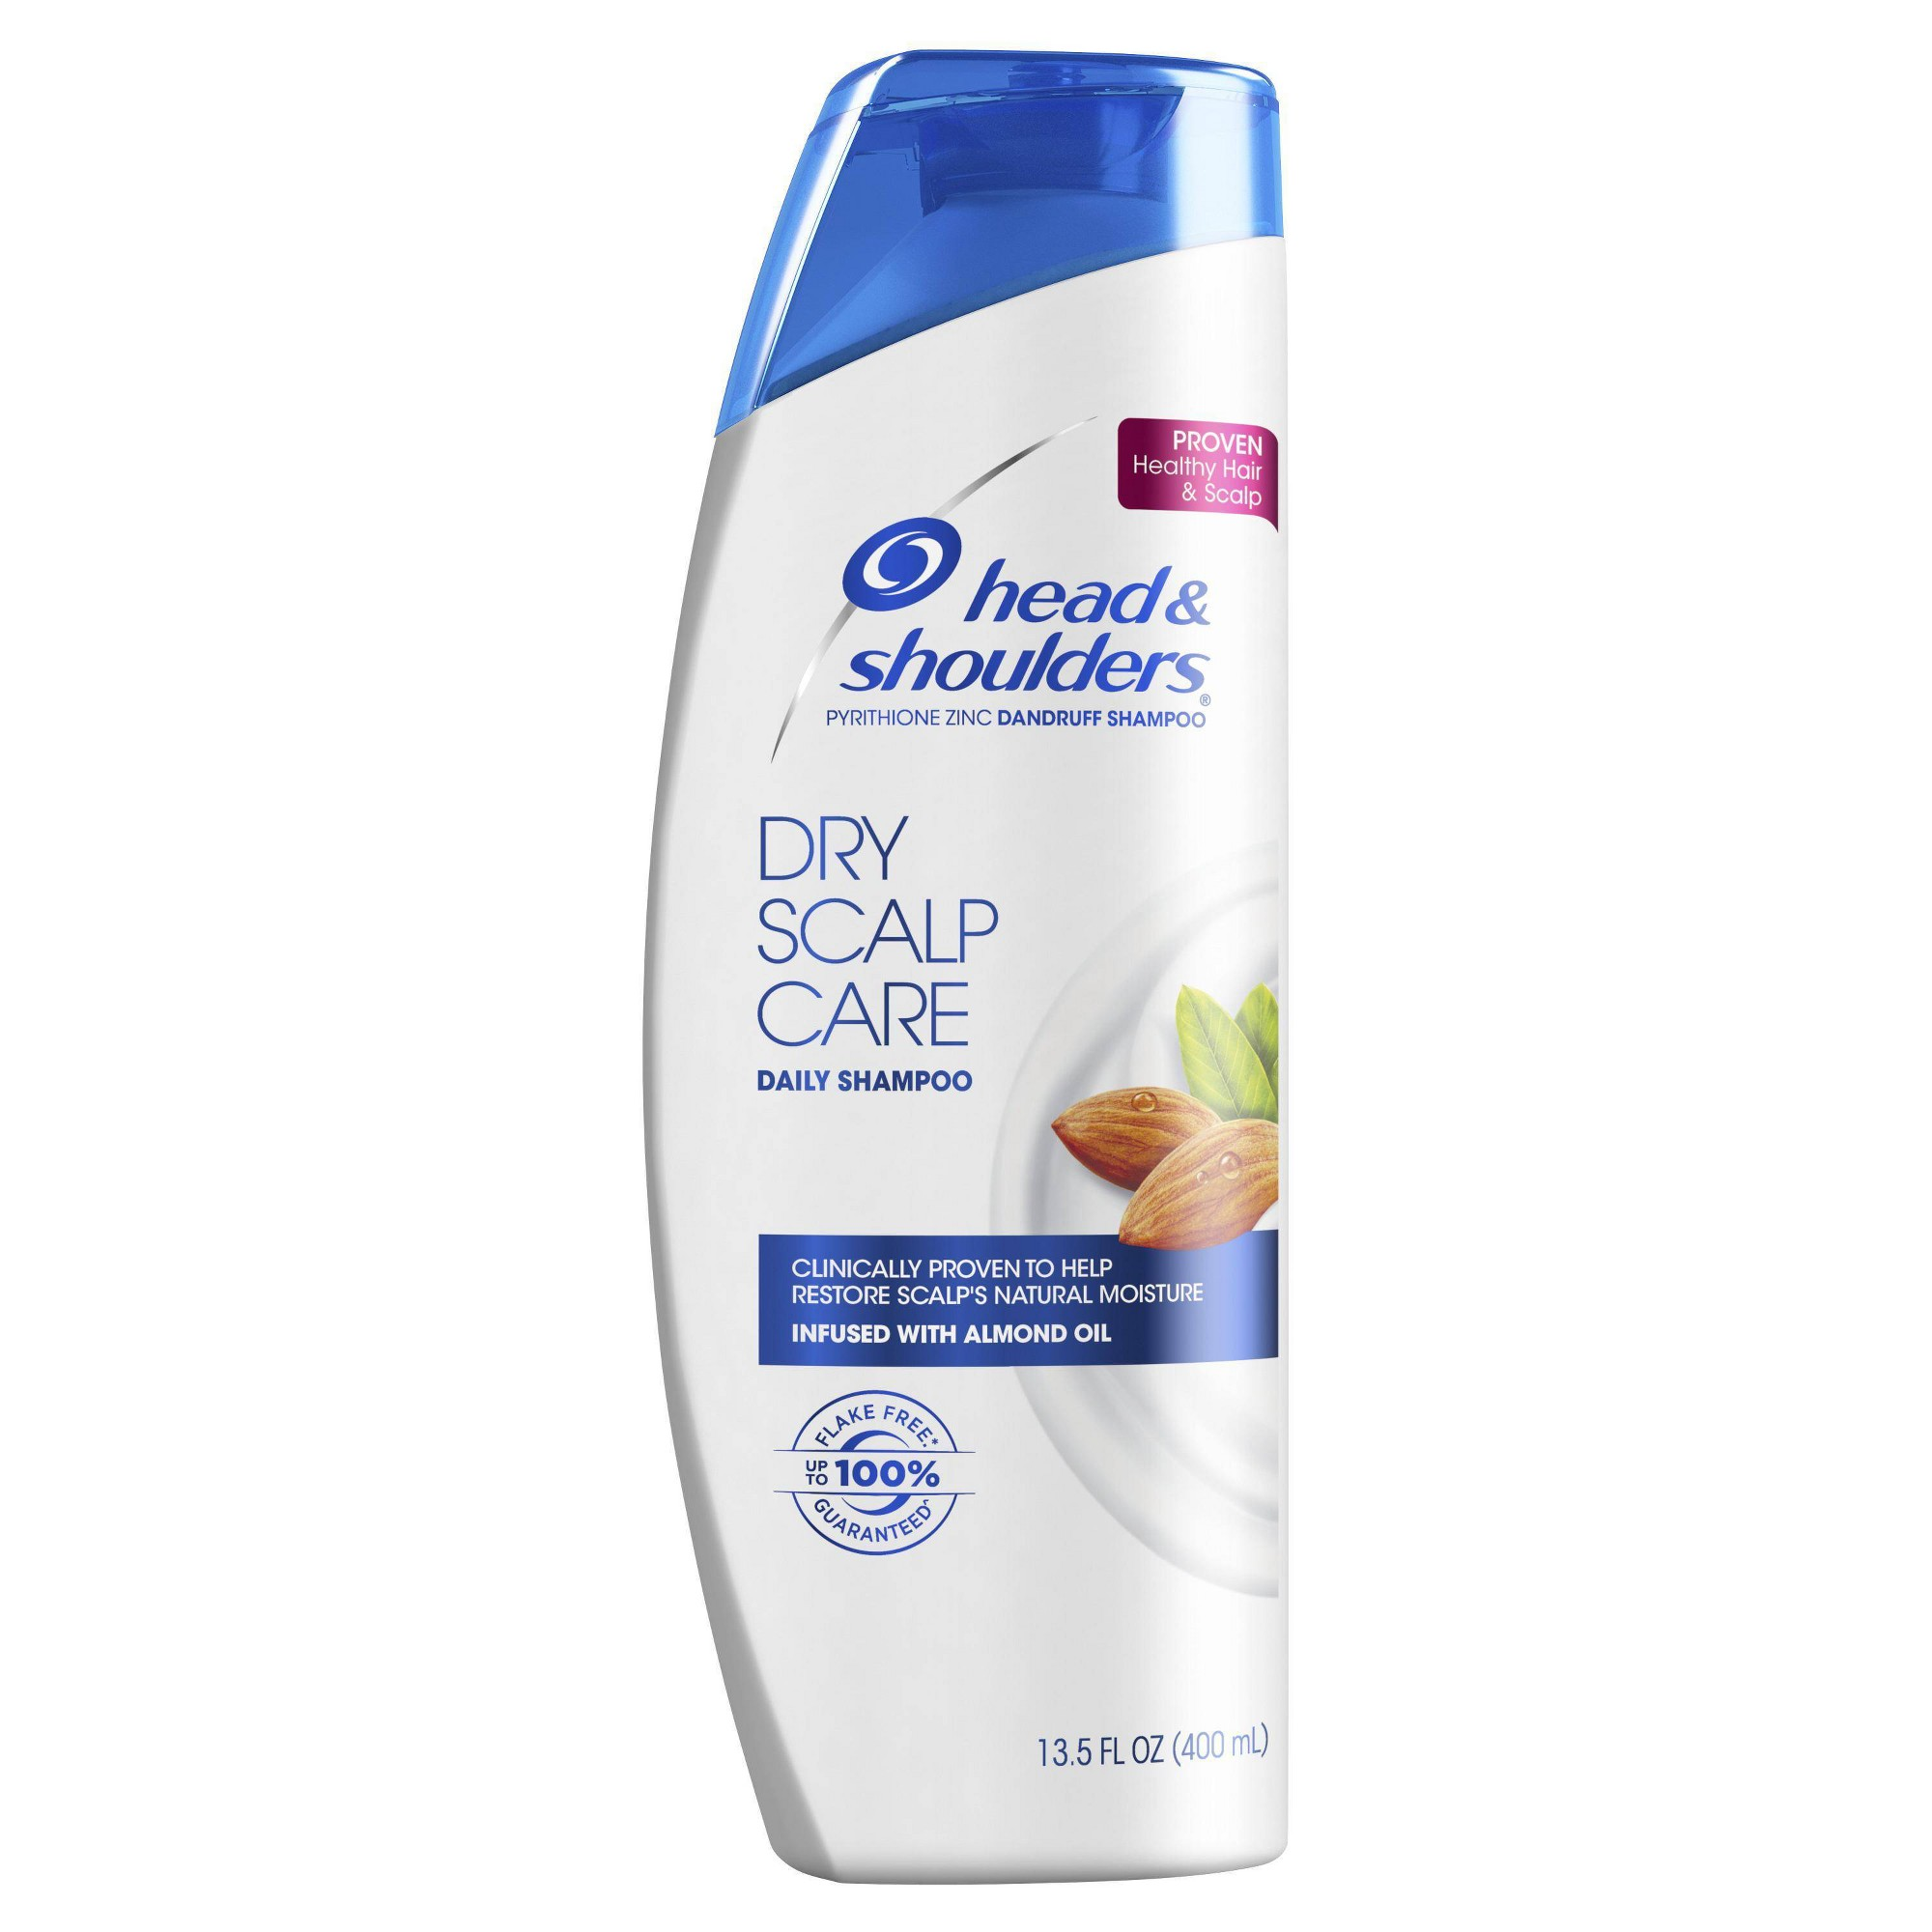 Head and Shoulders Dry Scalp Care with Almond Oil Anti-Dandruff Shampoo, Size: 13.5